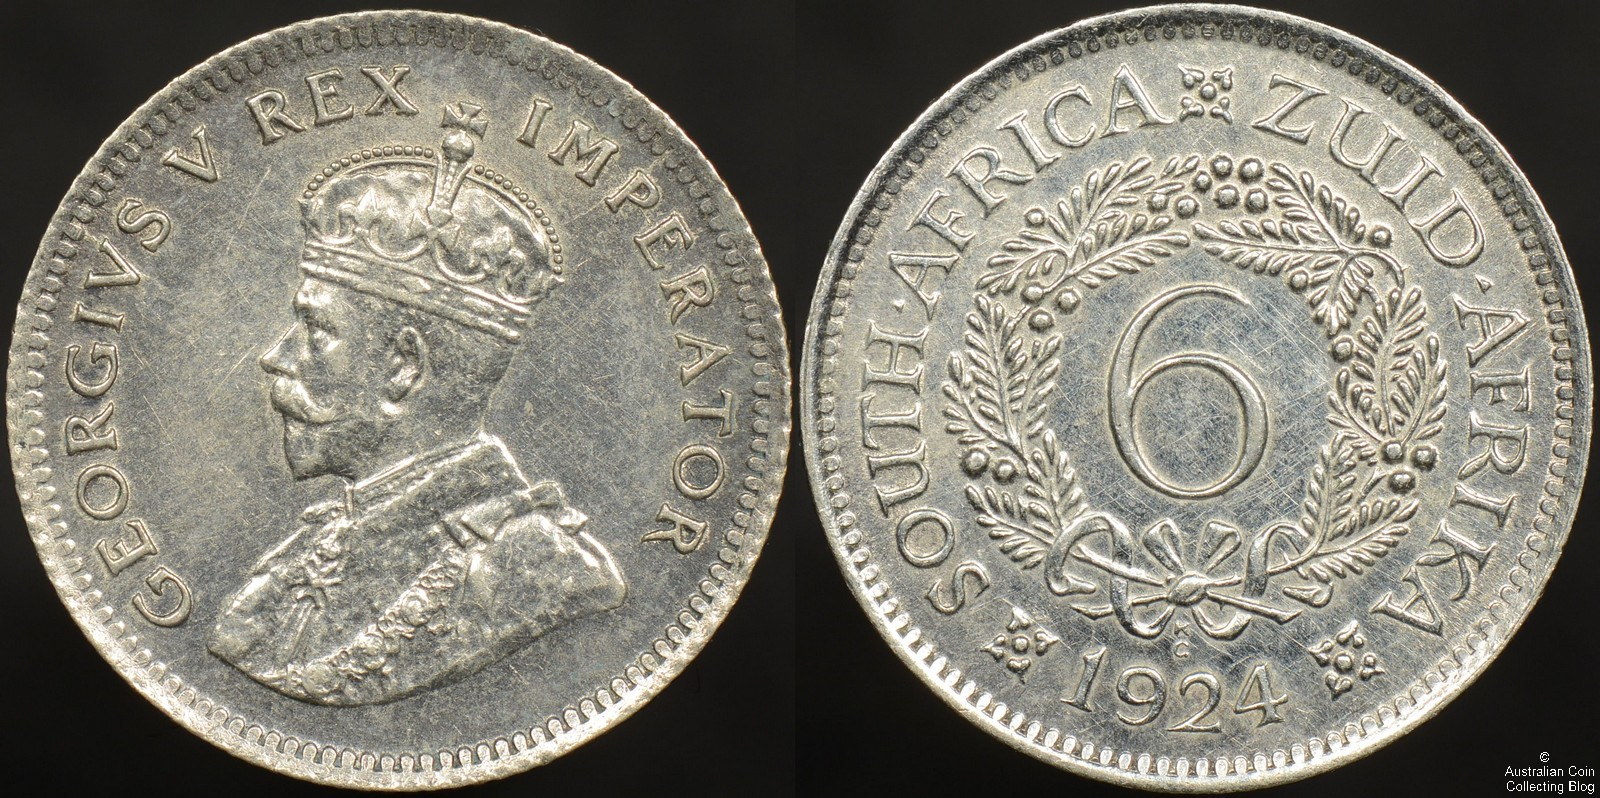 South Africa 1926 Sixpence